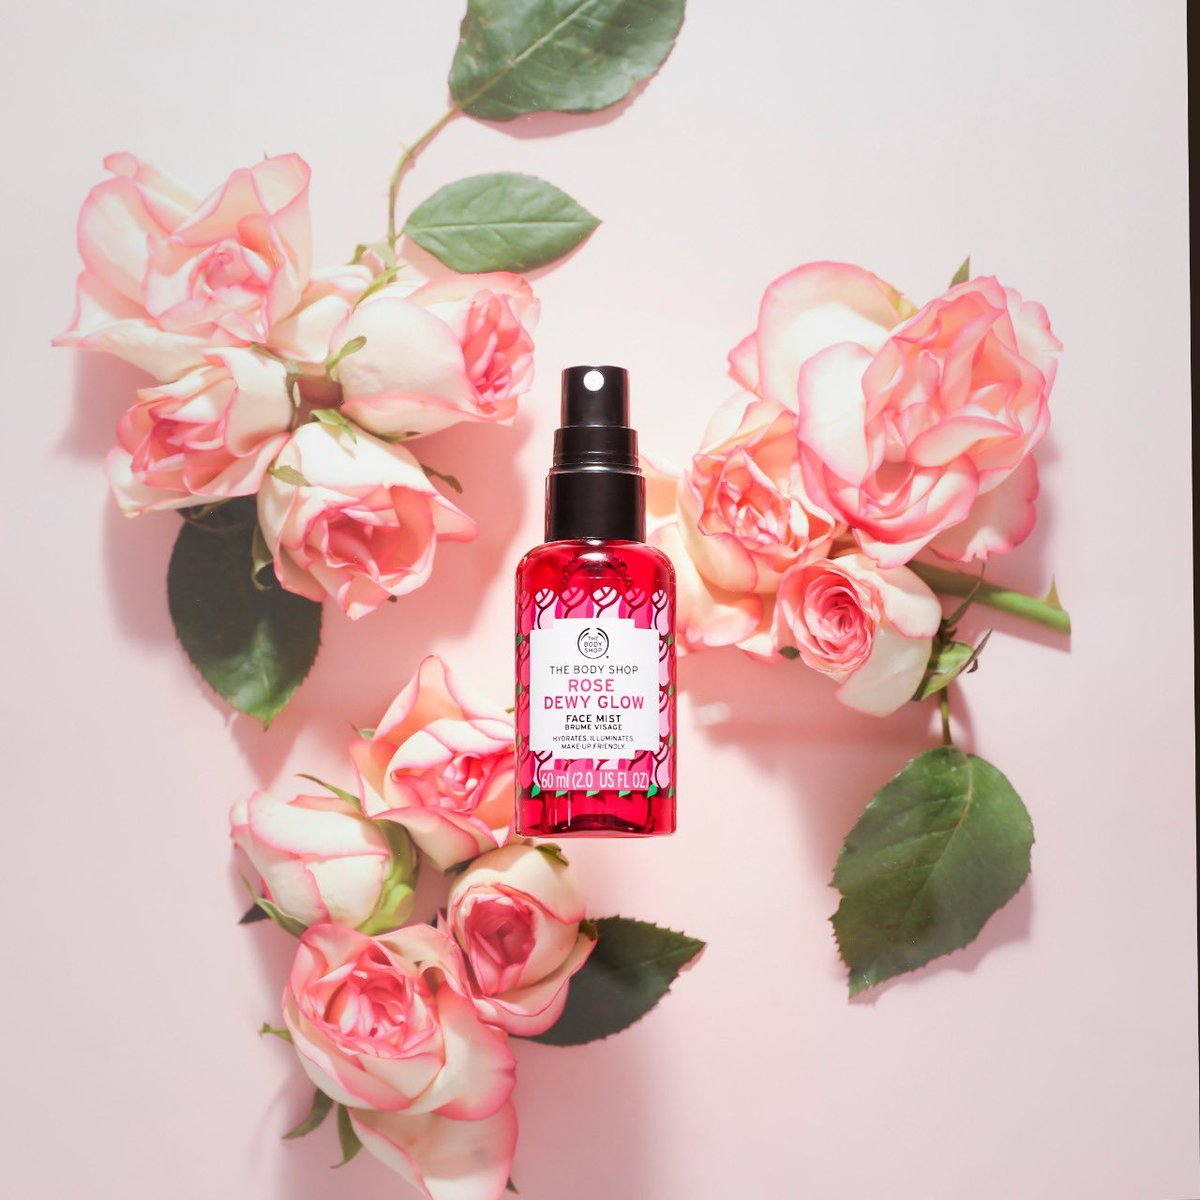 With raspberry essence, cherry water from France and Community Fair Trade British rose essence, the Rose Dewy Glow Face Mist leaves skin feeling hydrated and instantly refreshed after a spritz. Shop Online, In-store or via Home Delivery call +917042004412 #TBSInd #FaceMist